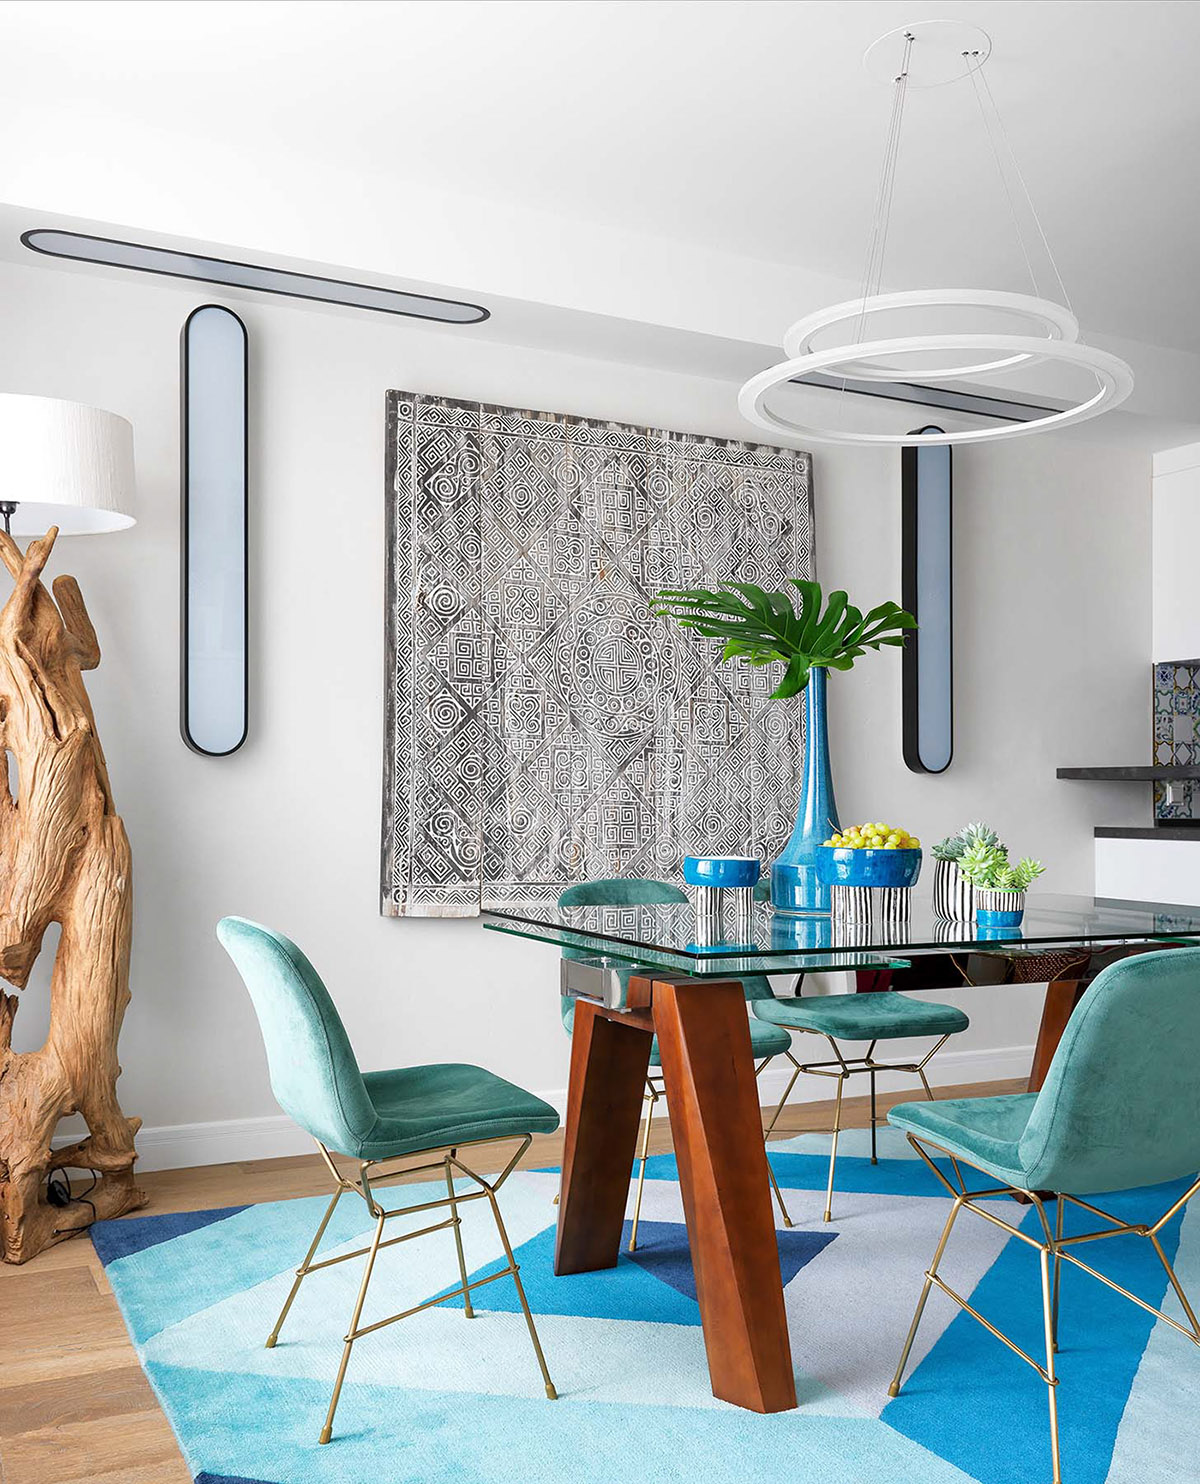 2 Quirky Interiors With Punchy Colourful Decor